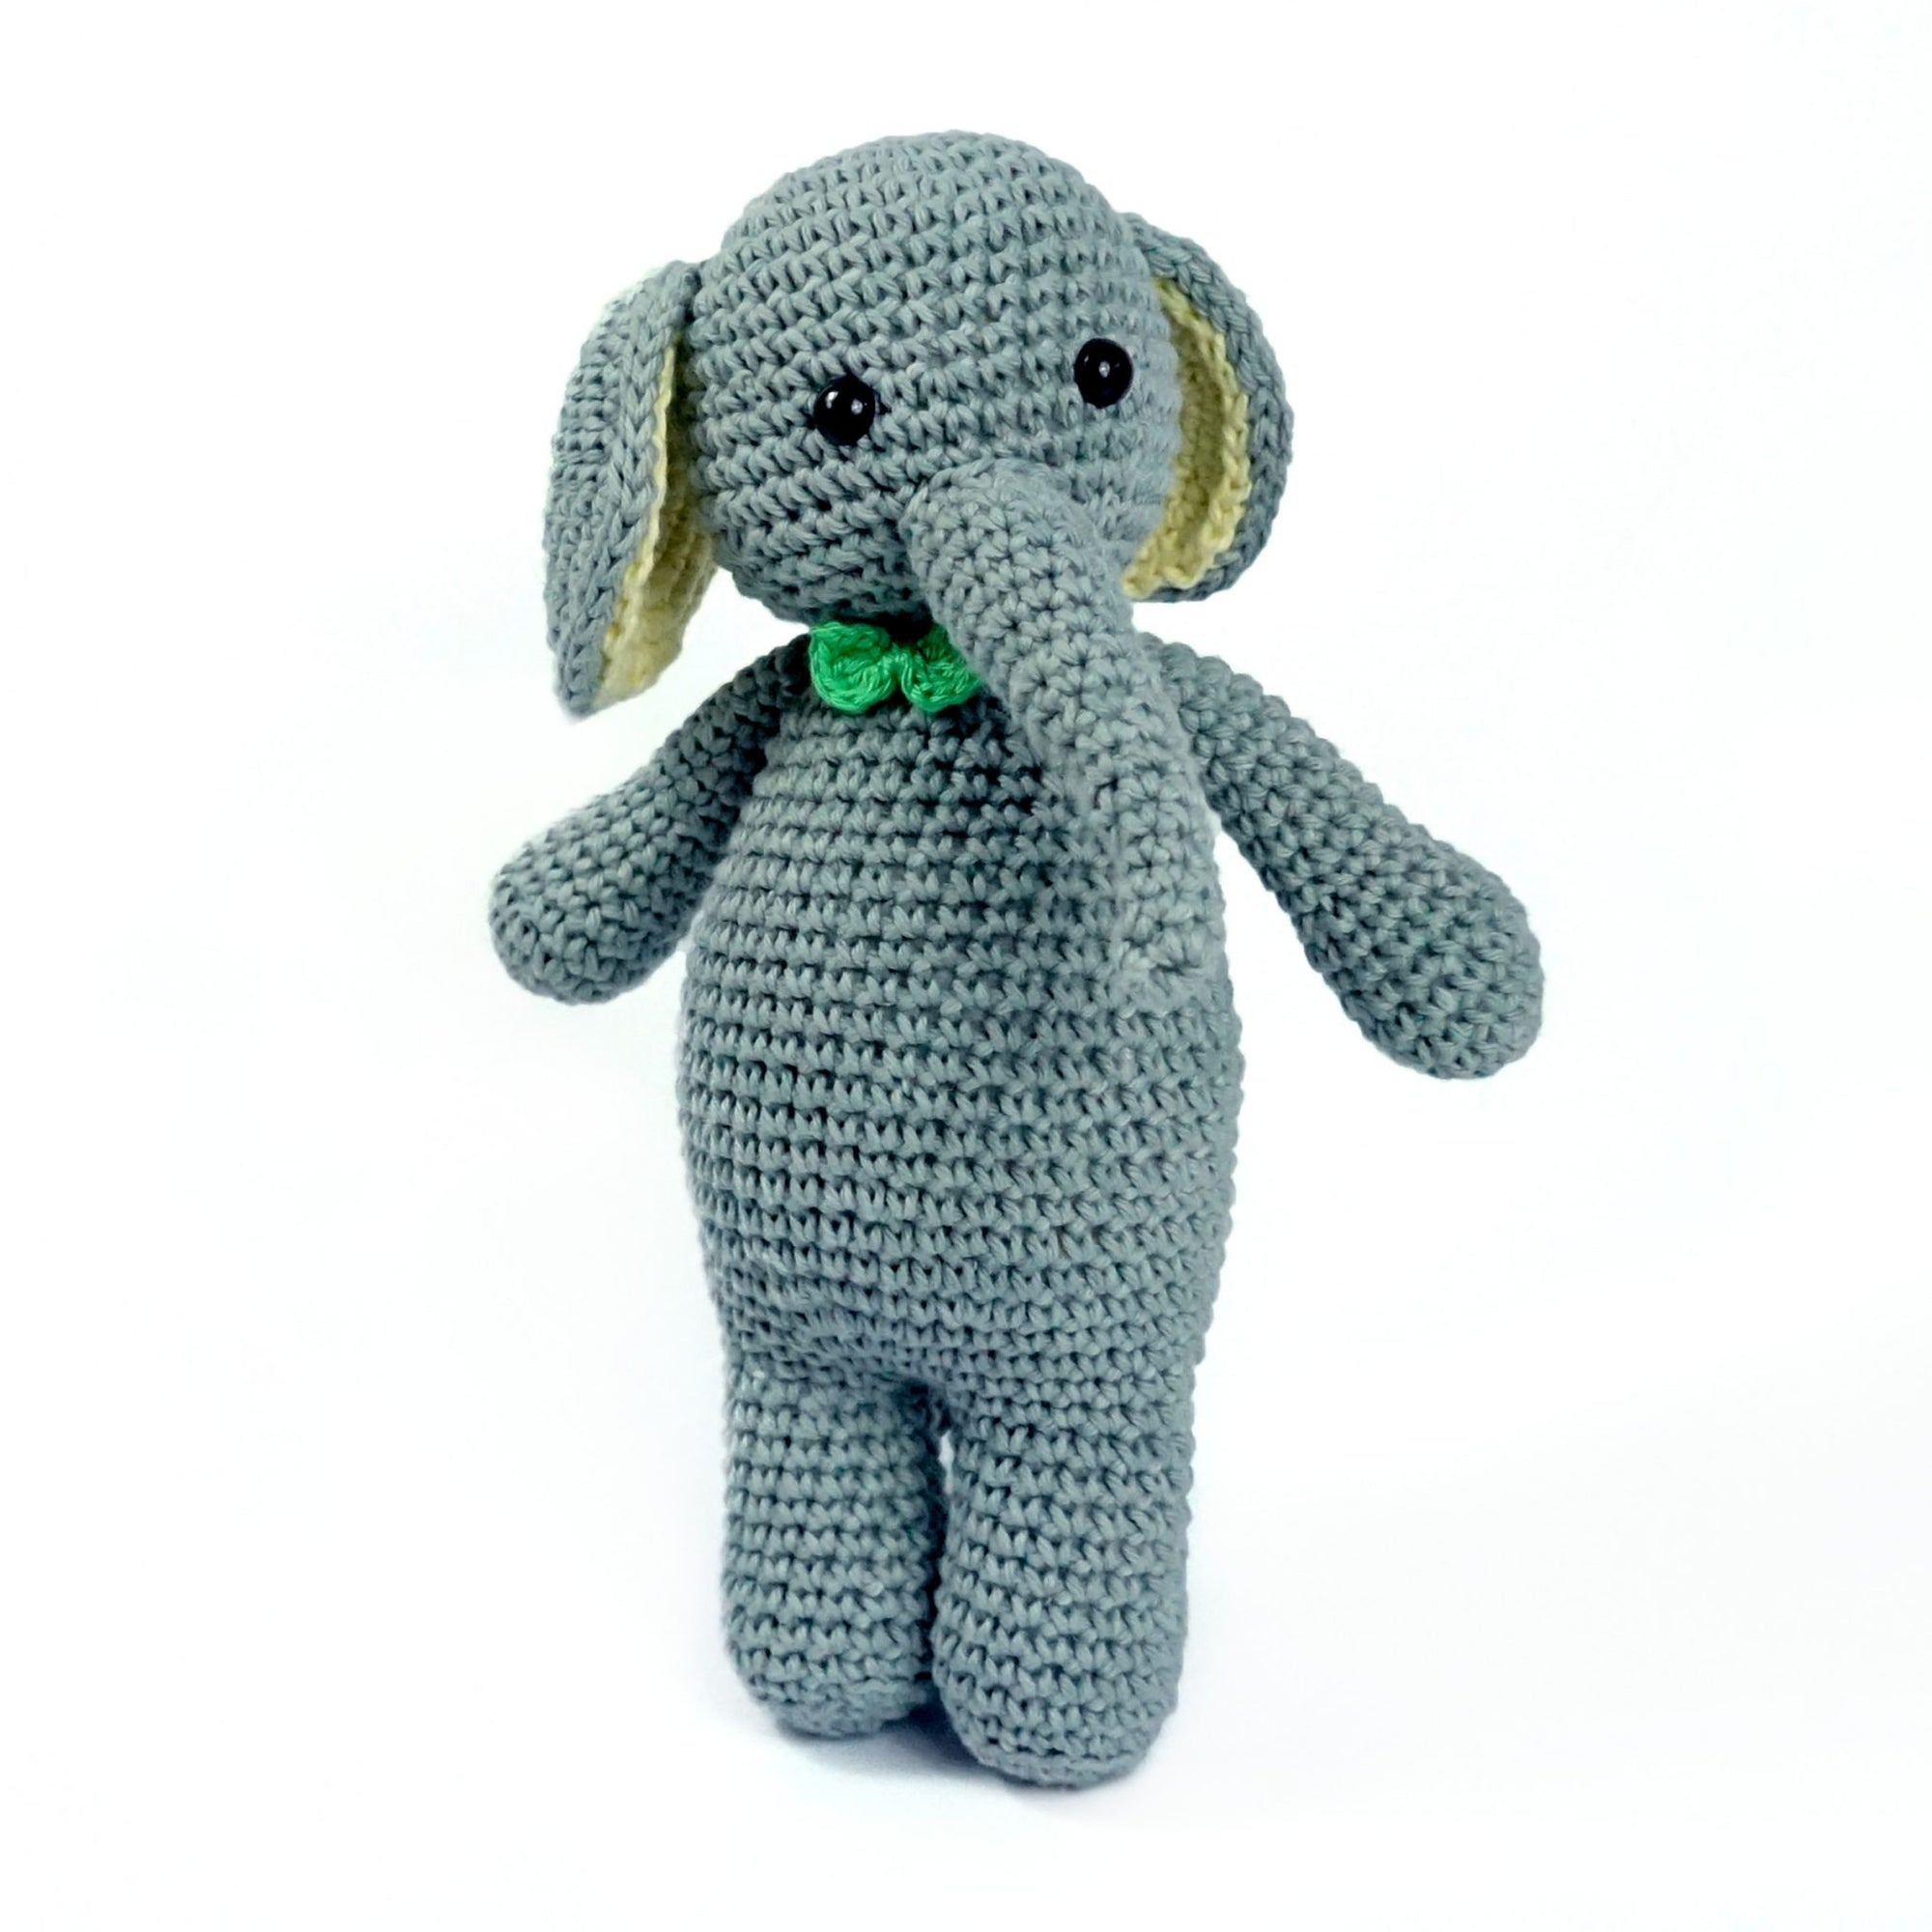 Choki Elephant | Toys | Arunny | [product_tag] - Fair Bazaar Ethical Living